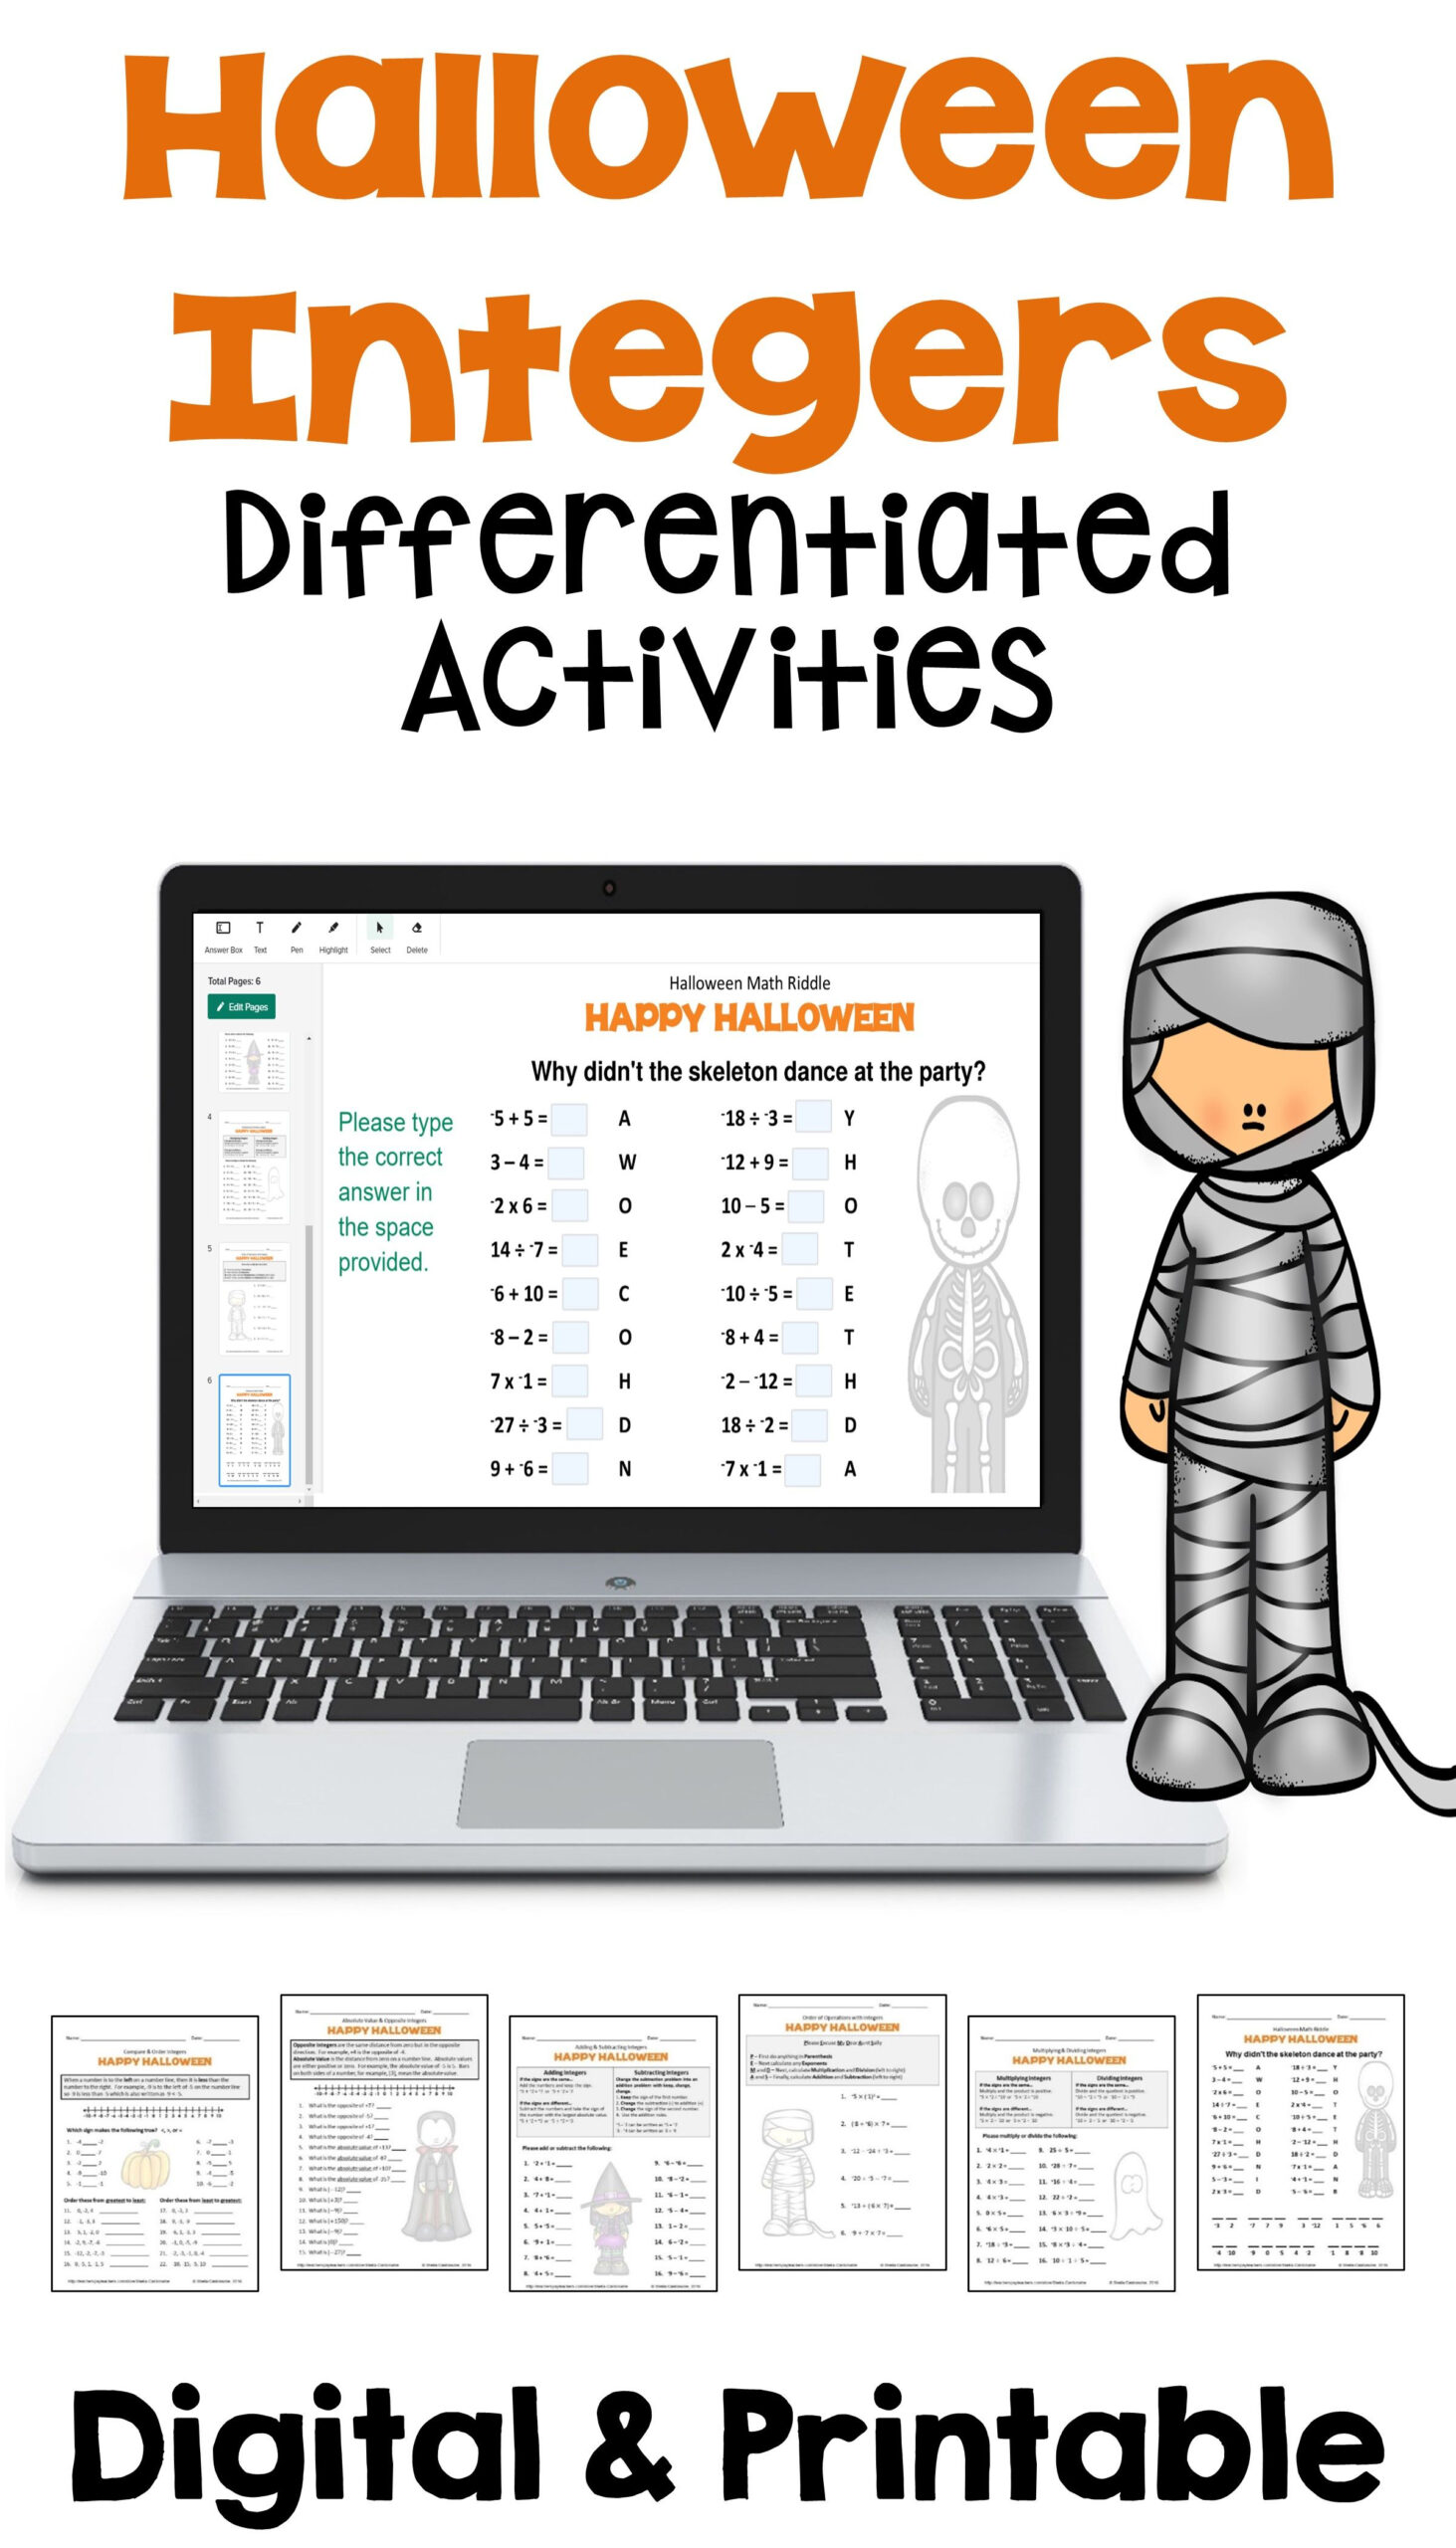 Halloween Integers Differentiated Activities With Digital